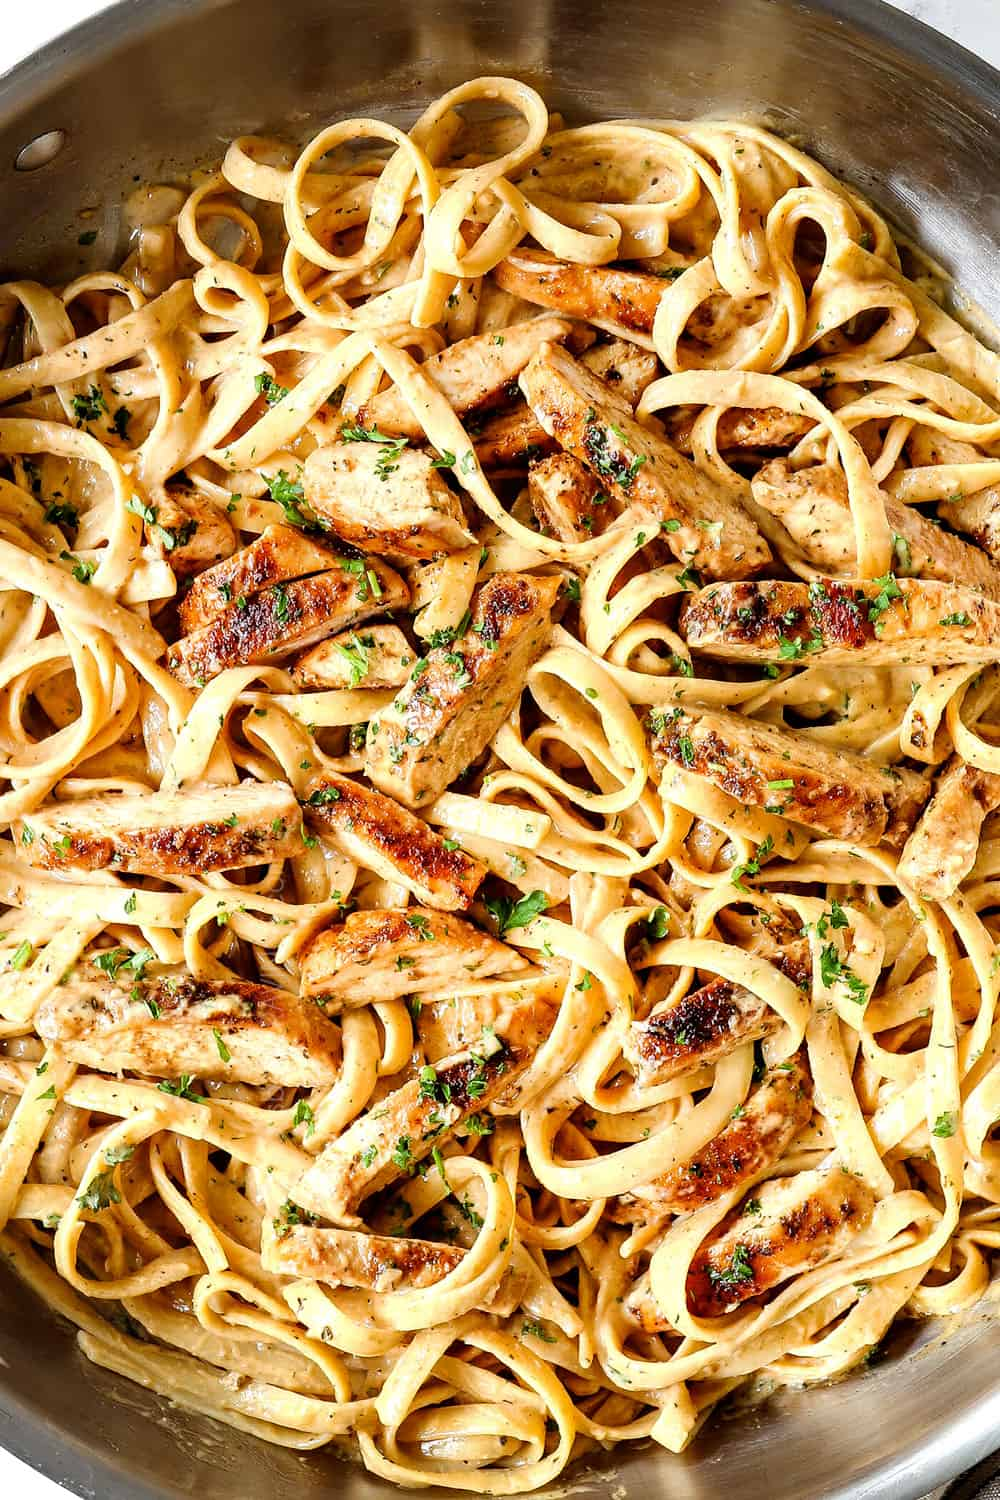 showing how to make Chicken Alfredo pasta by tossing the blackened chicken with the fettuccine pasta